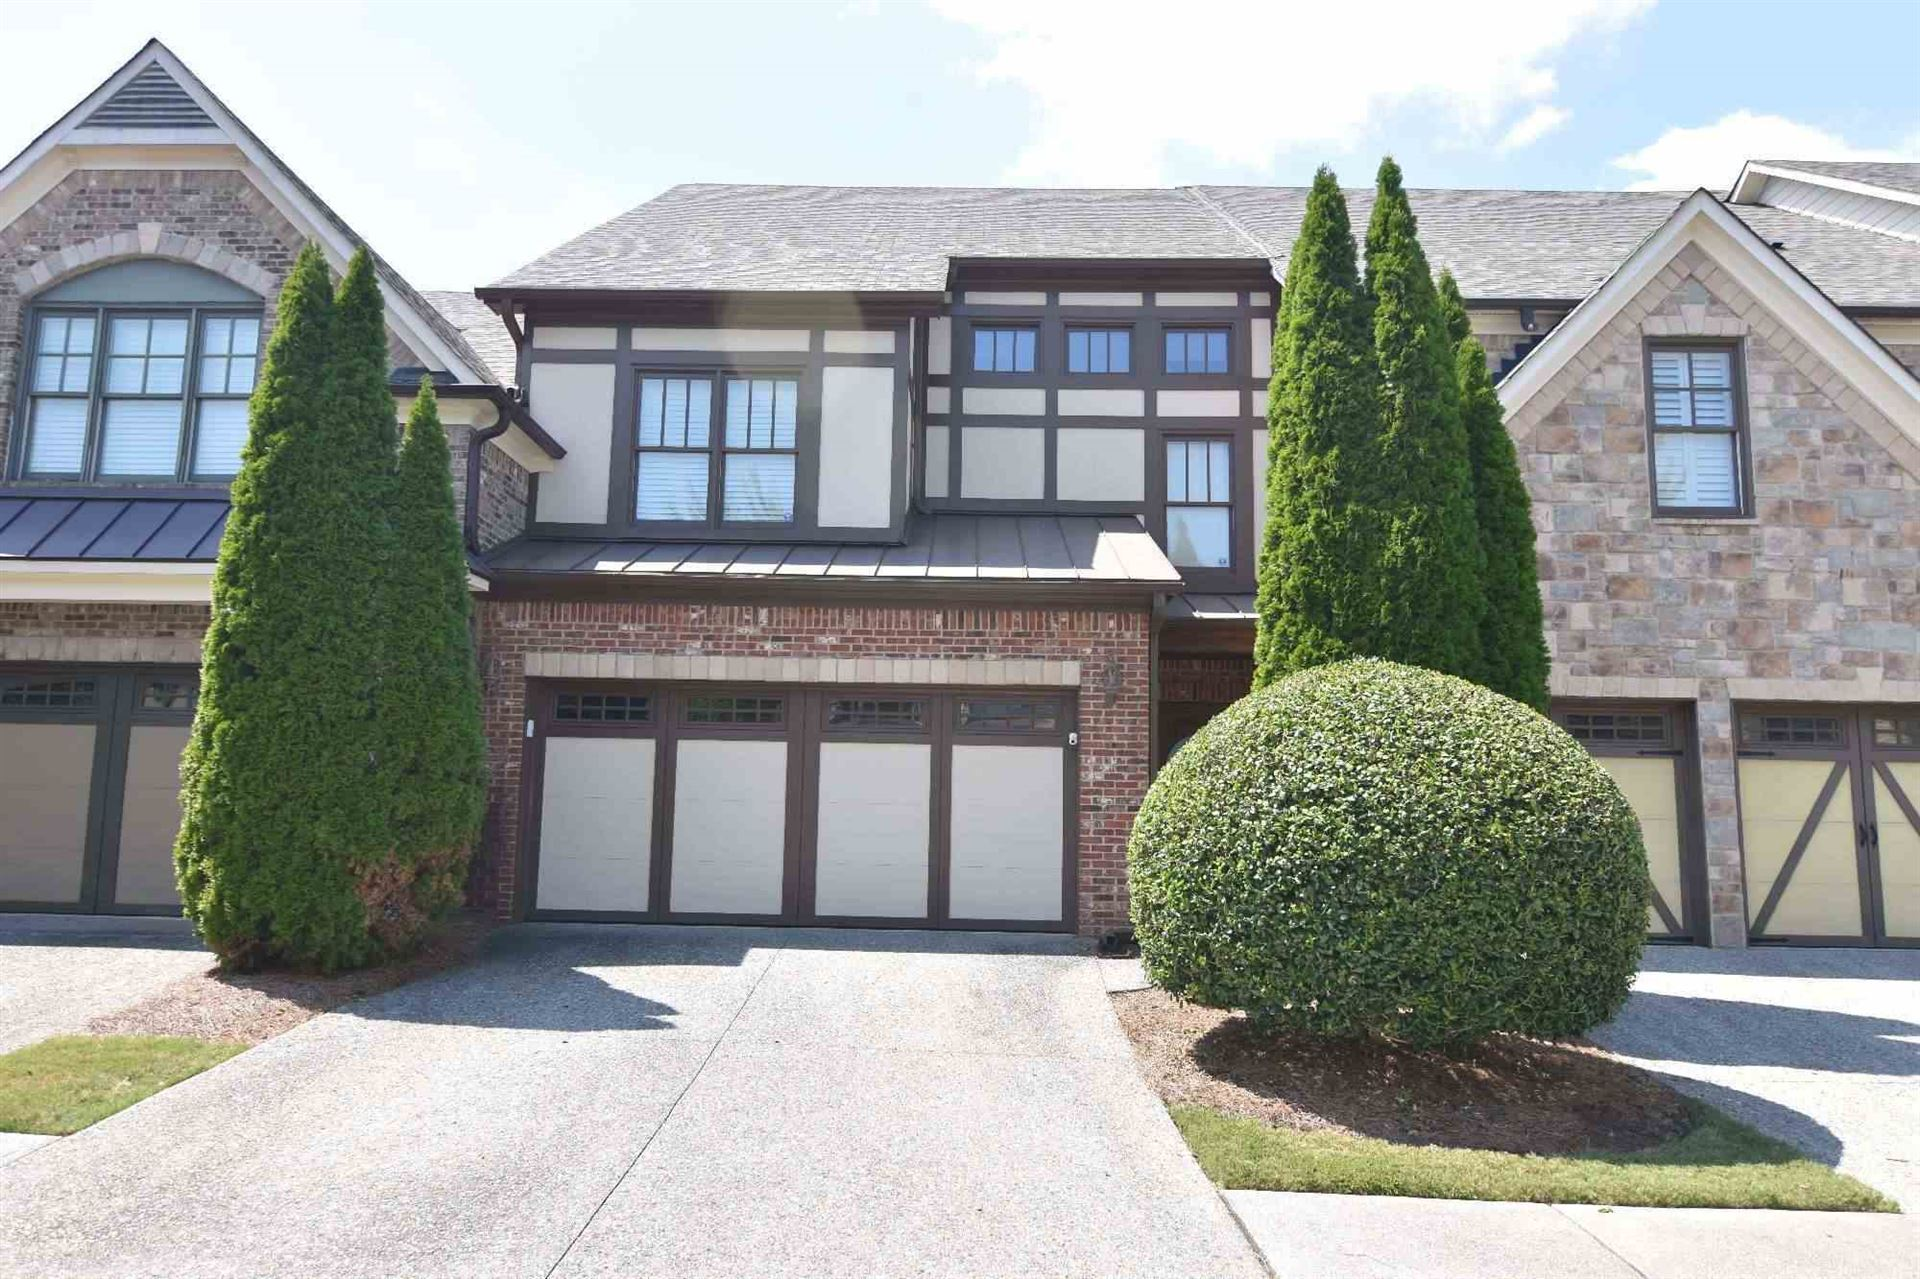 1685 Township Cir, Alpharetta, GA 30004 - MLS#: 8863316